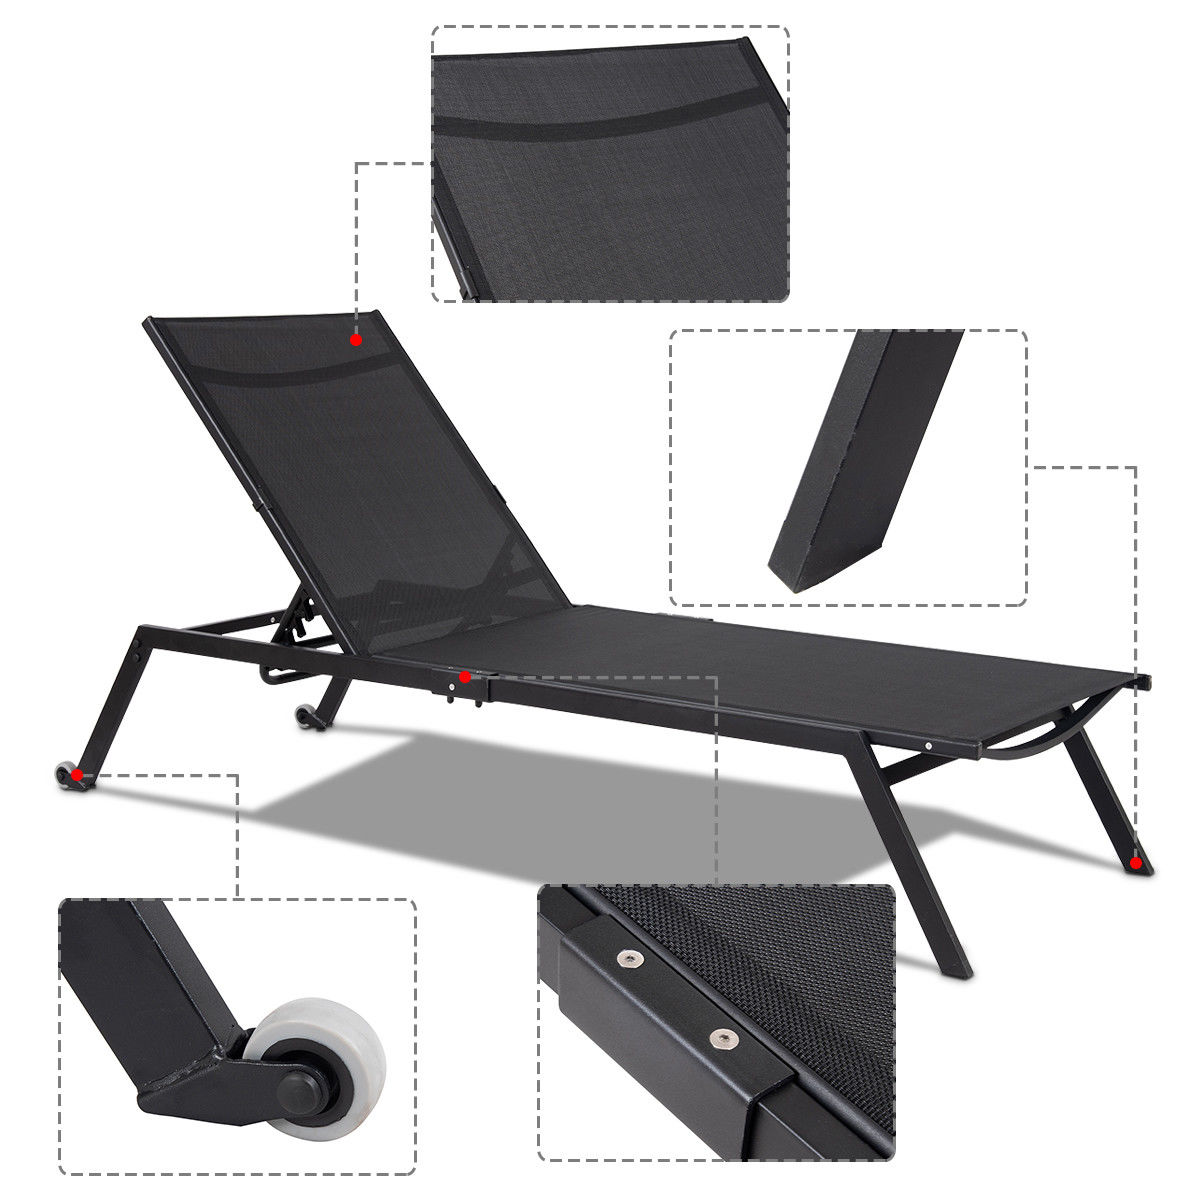 Costway Patio Beach Chaise Lounge Sling Armless Chaise Height Adjustable Black - image 3 of 10